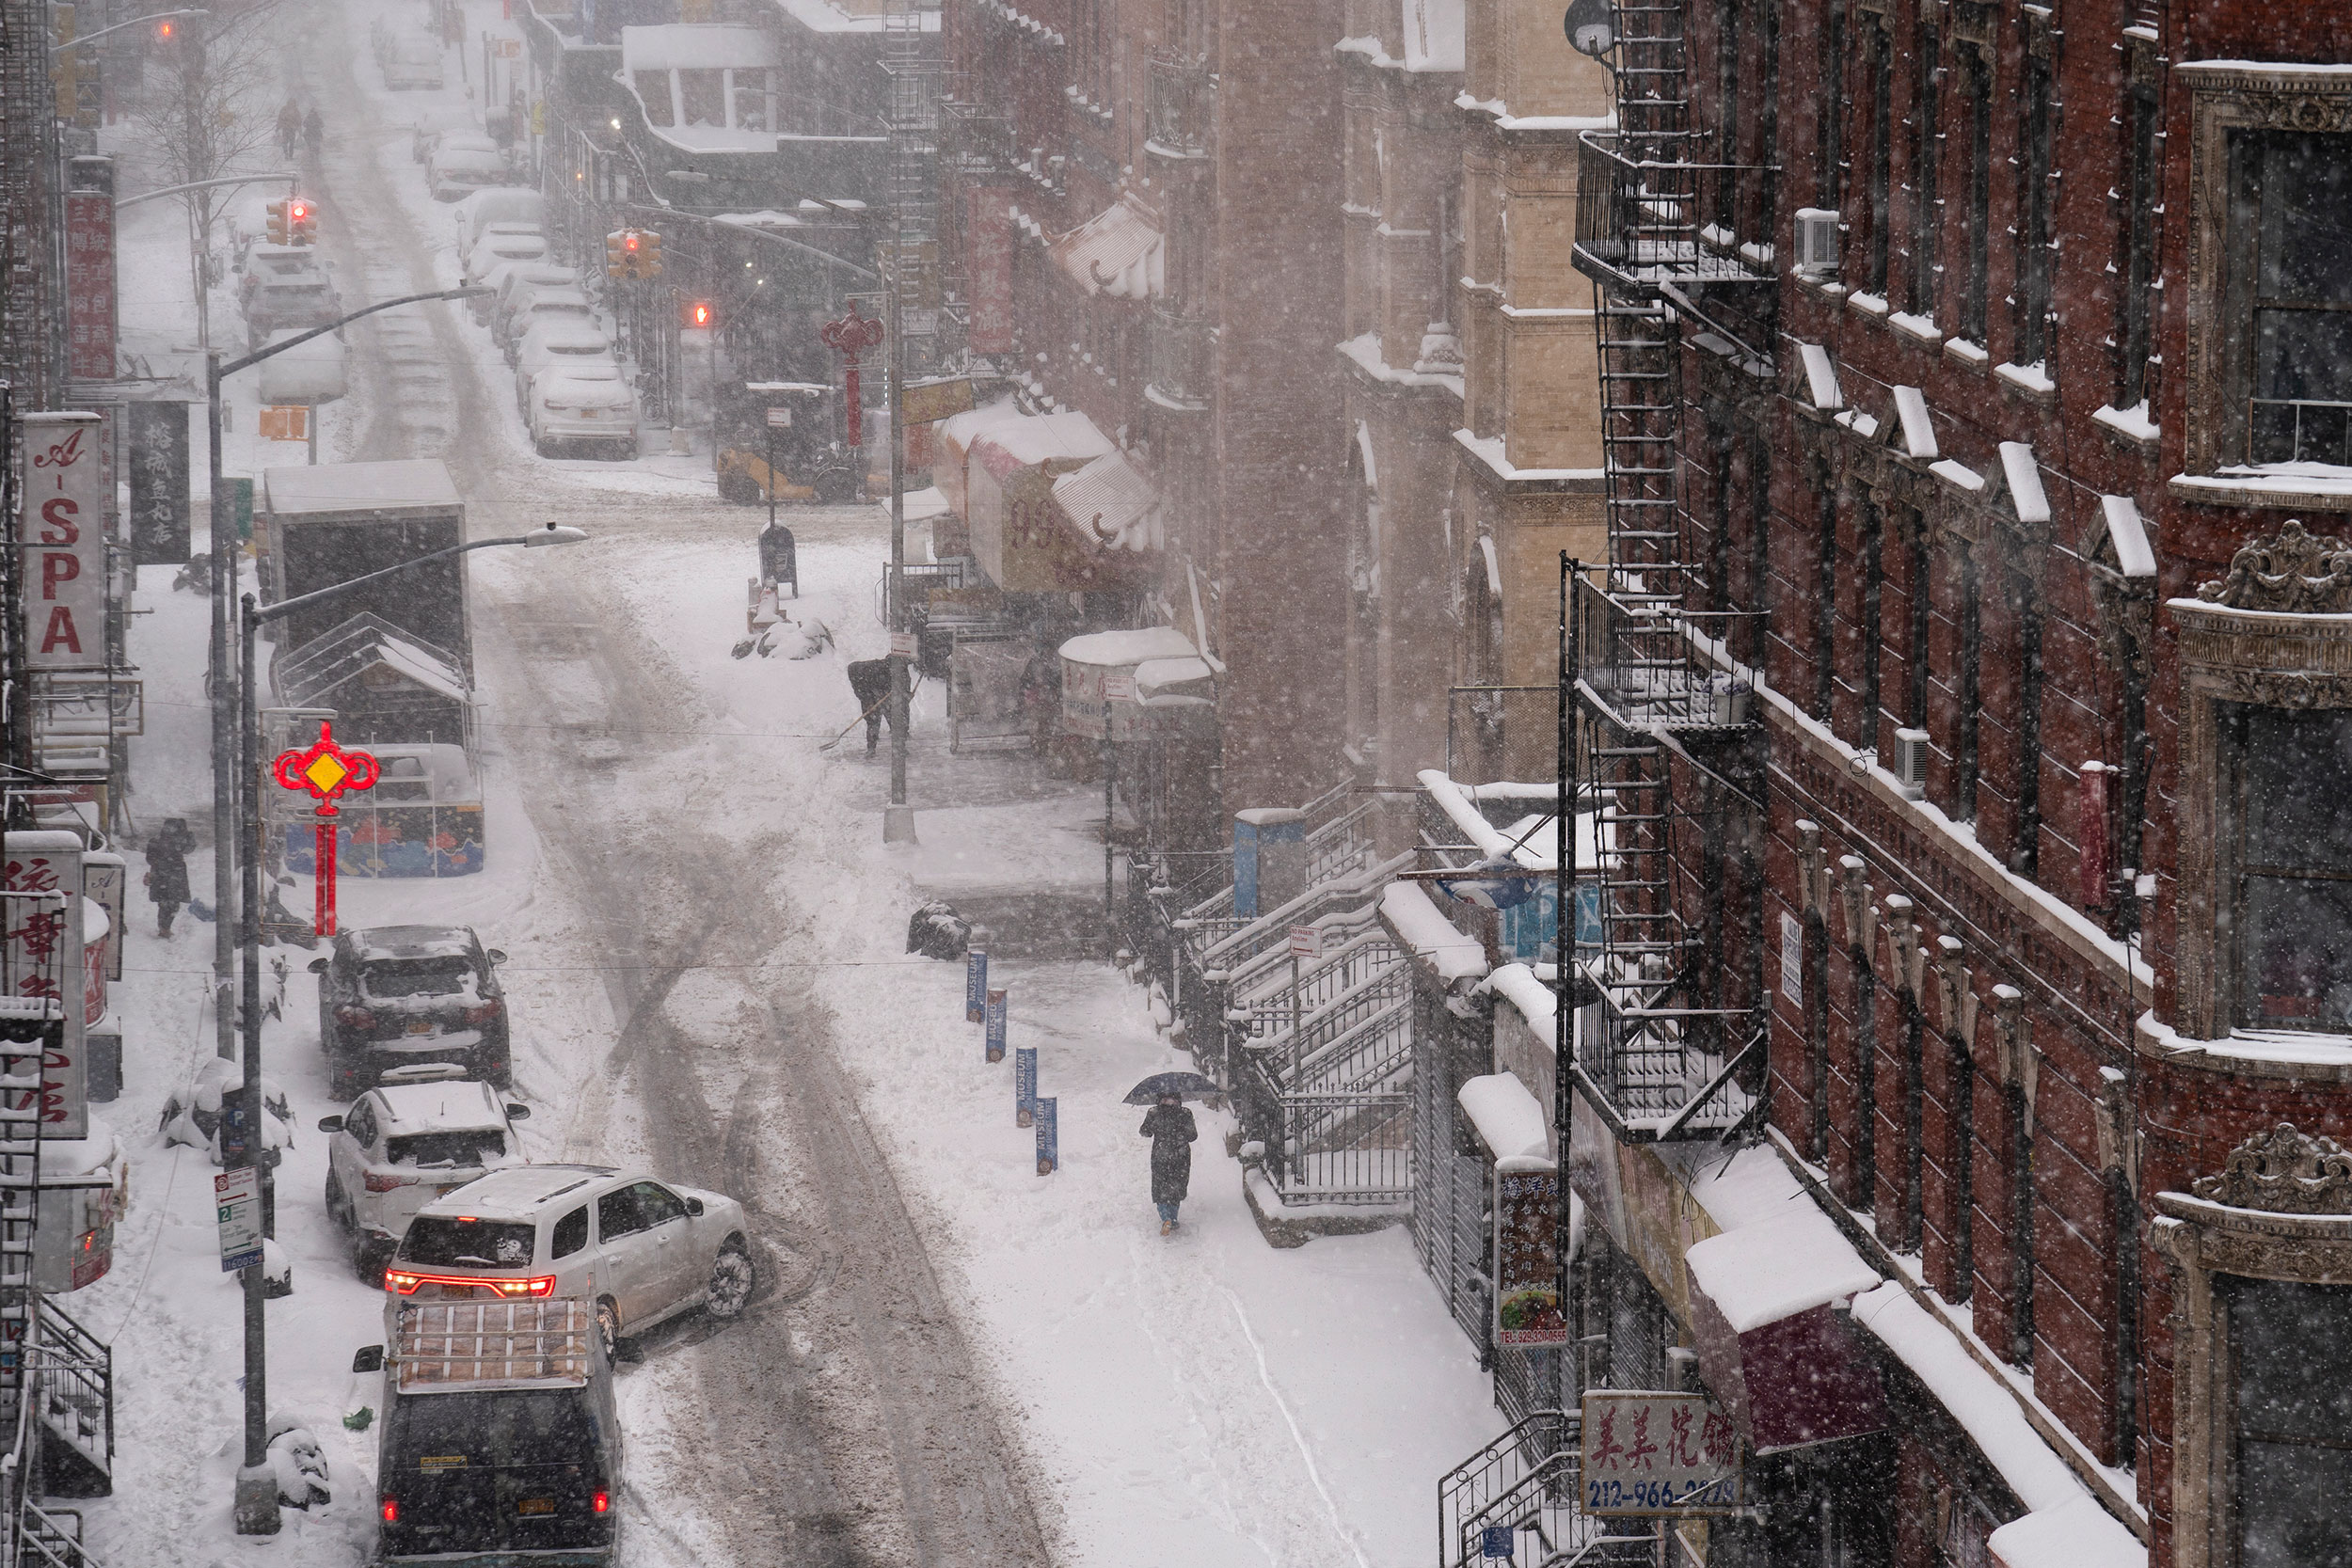 A pedestrian walks down a snow-covered sidewalk in New York on Monday.